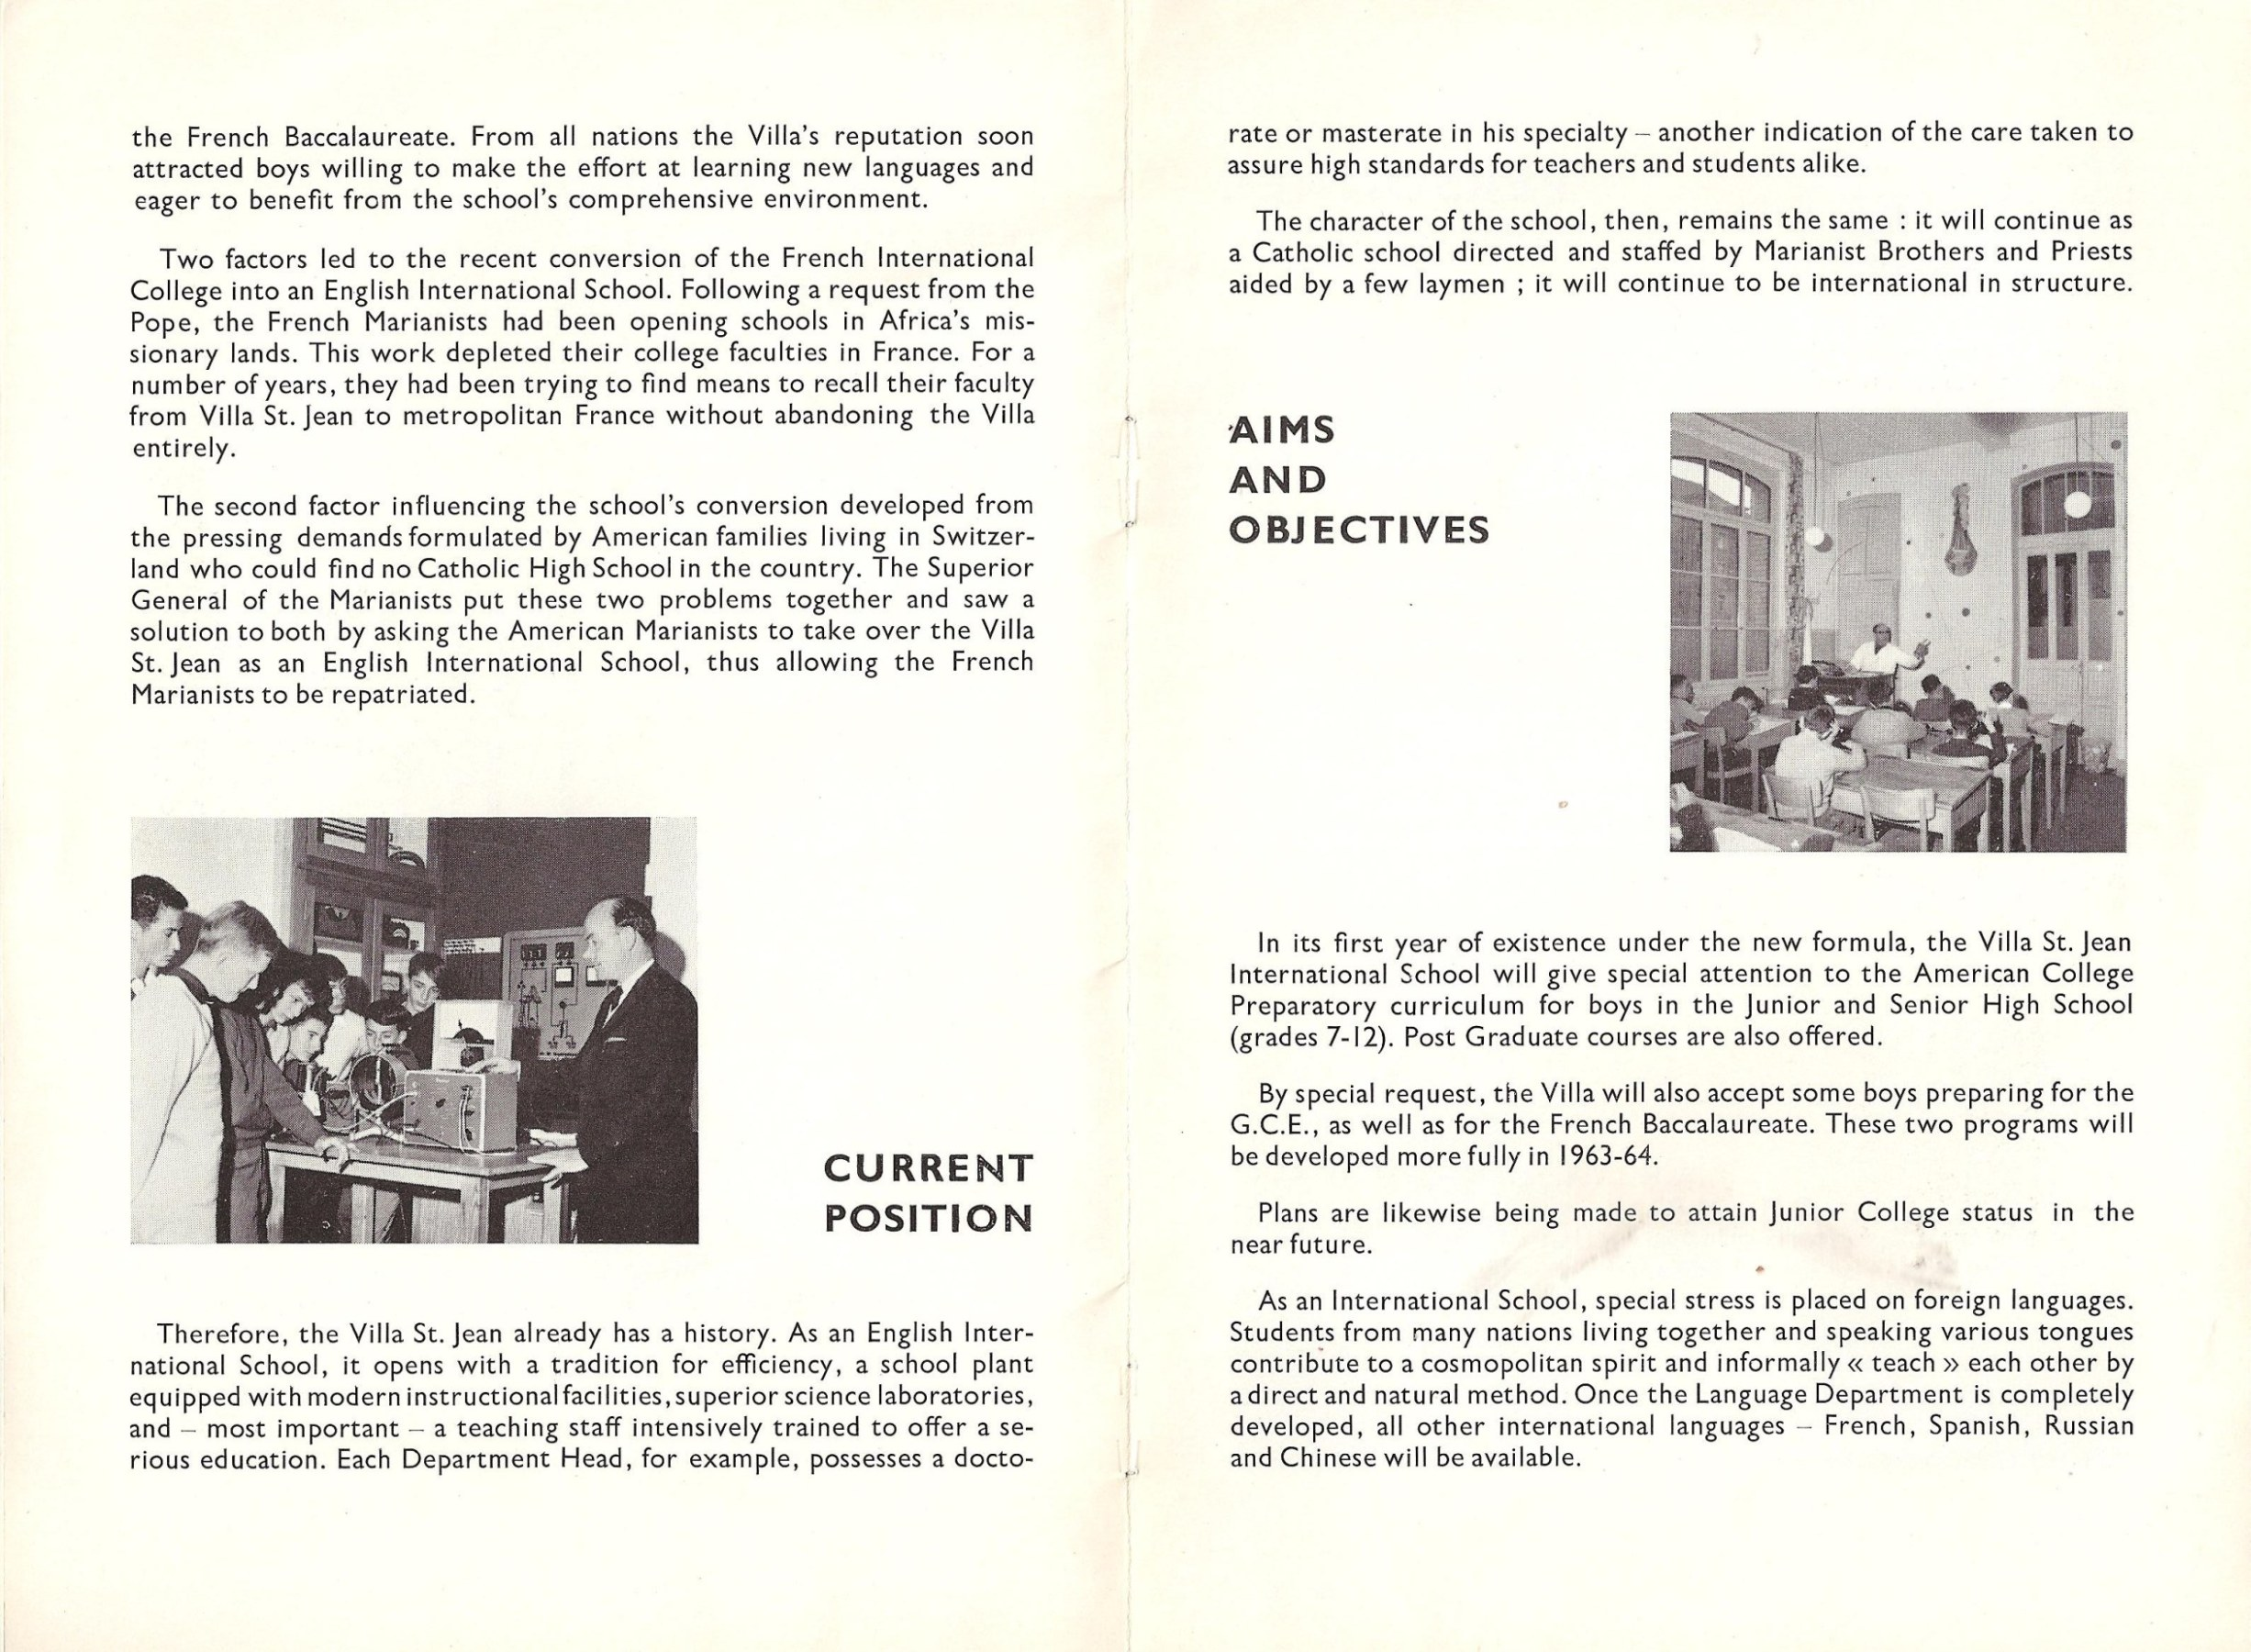 Image: Pages 3 and 4 of Villa Saint Jean November 1962 NEWSLETTER